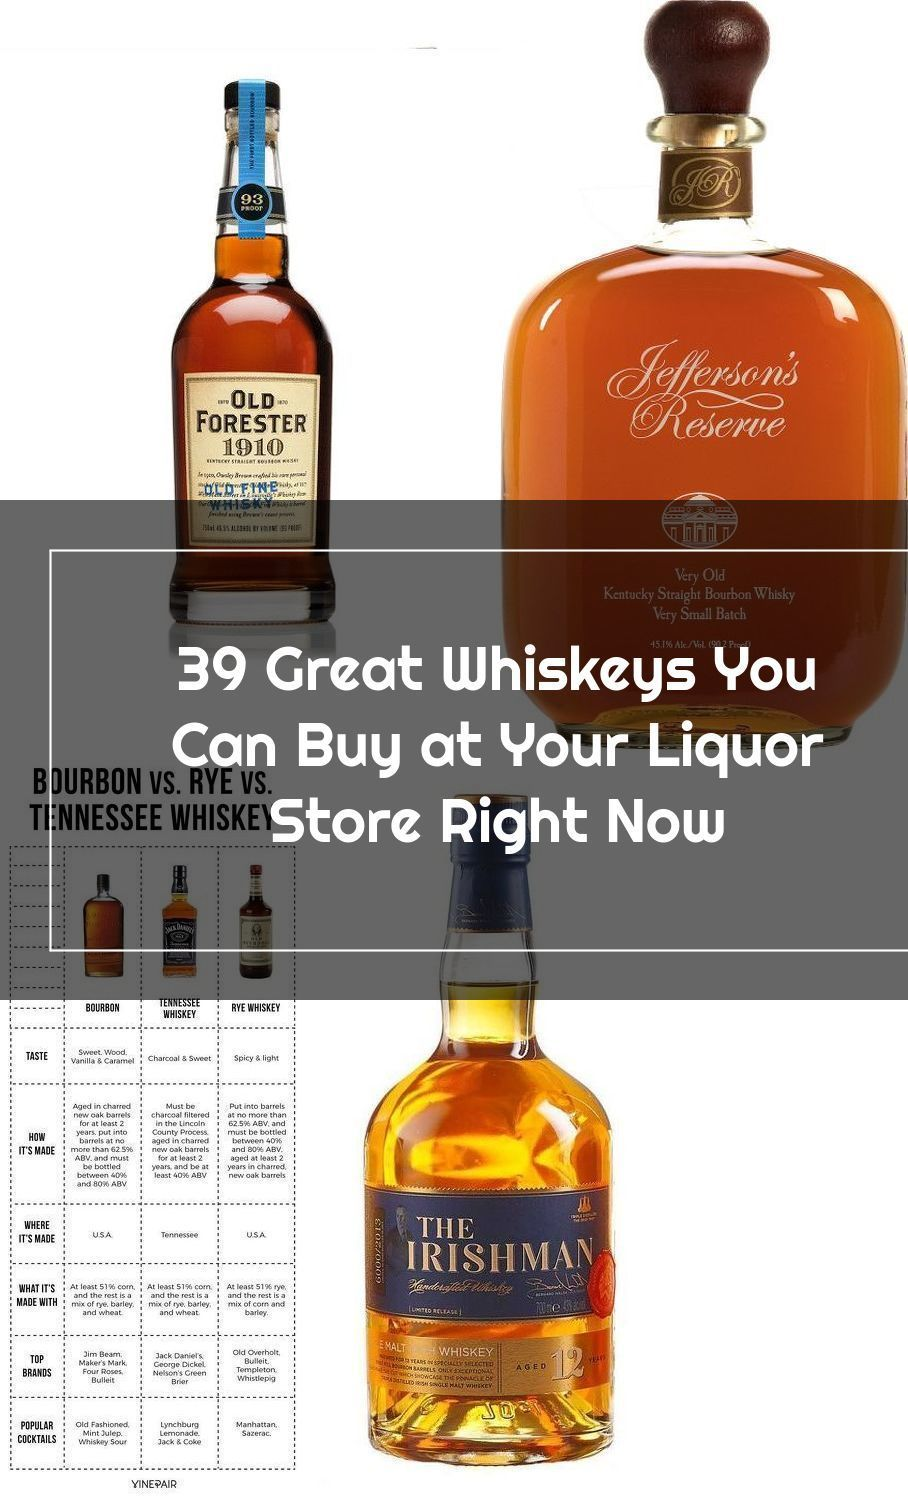 39 Great Whiskeys You Can Buy at Your Liquor Store Right